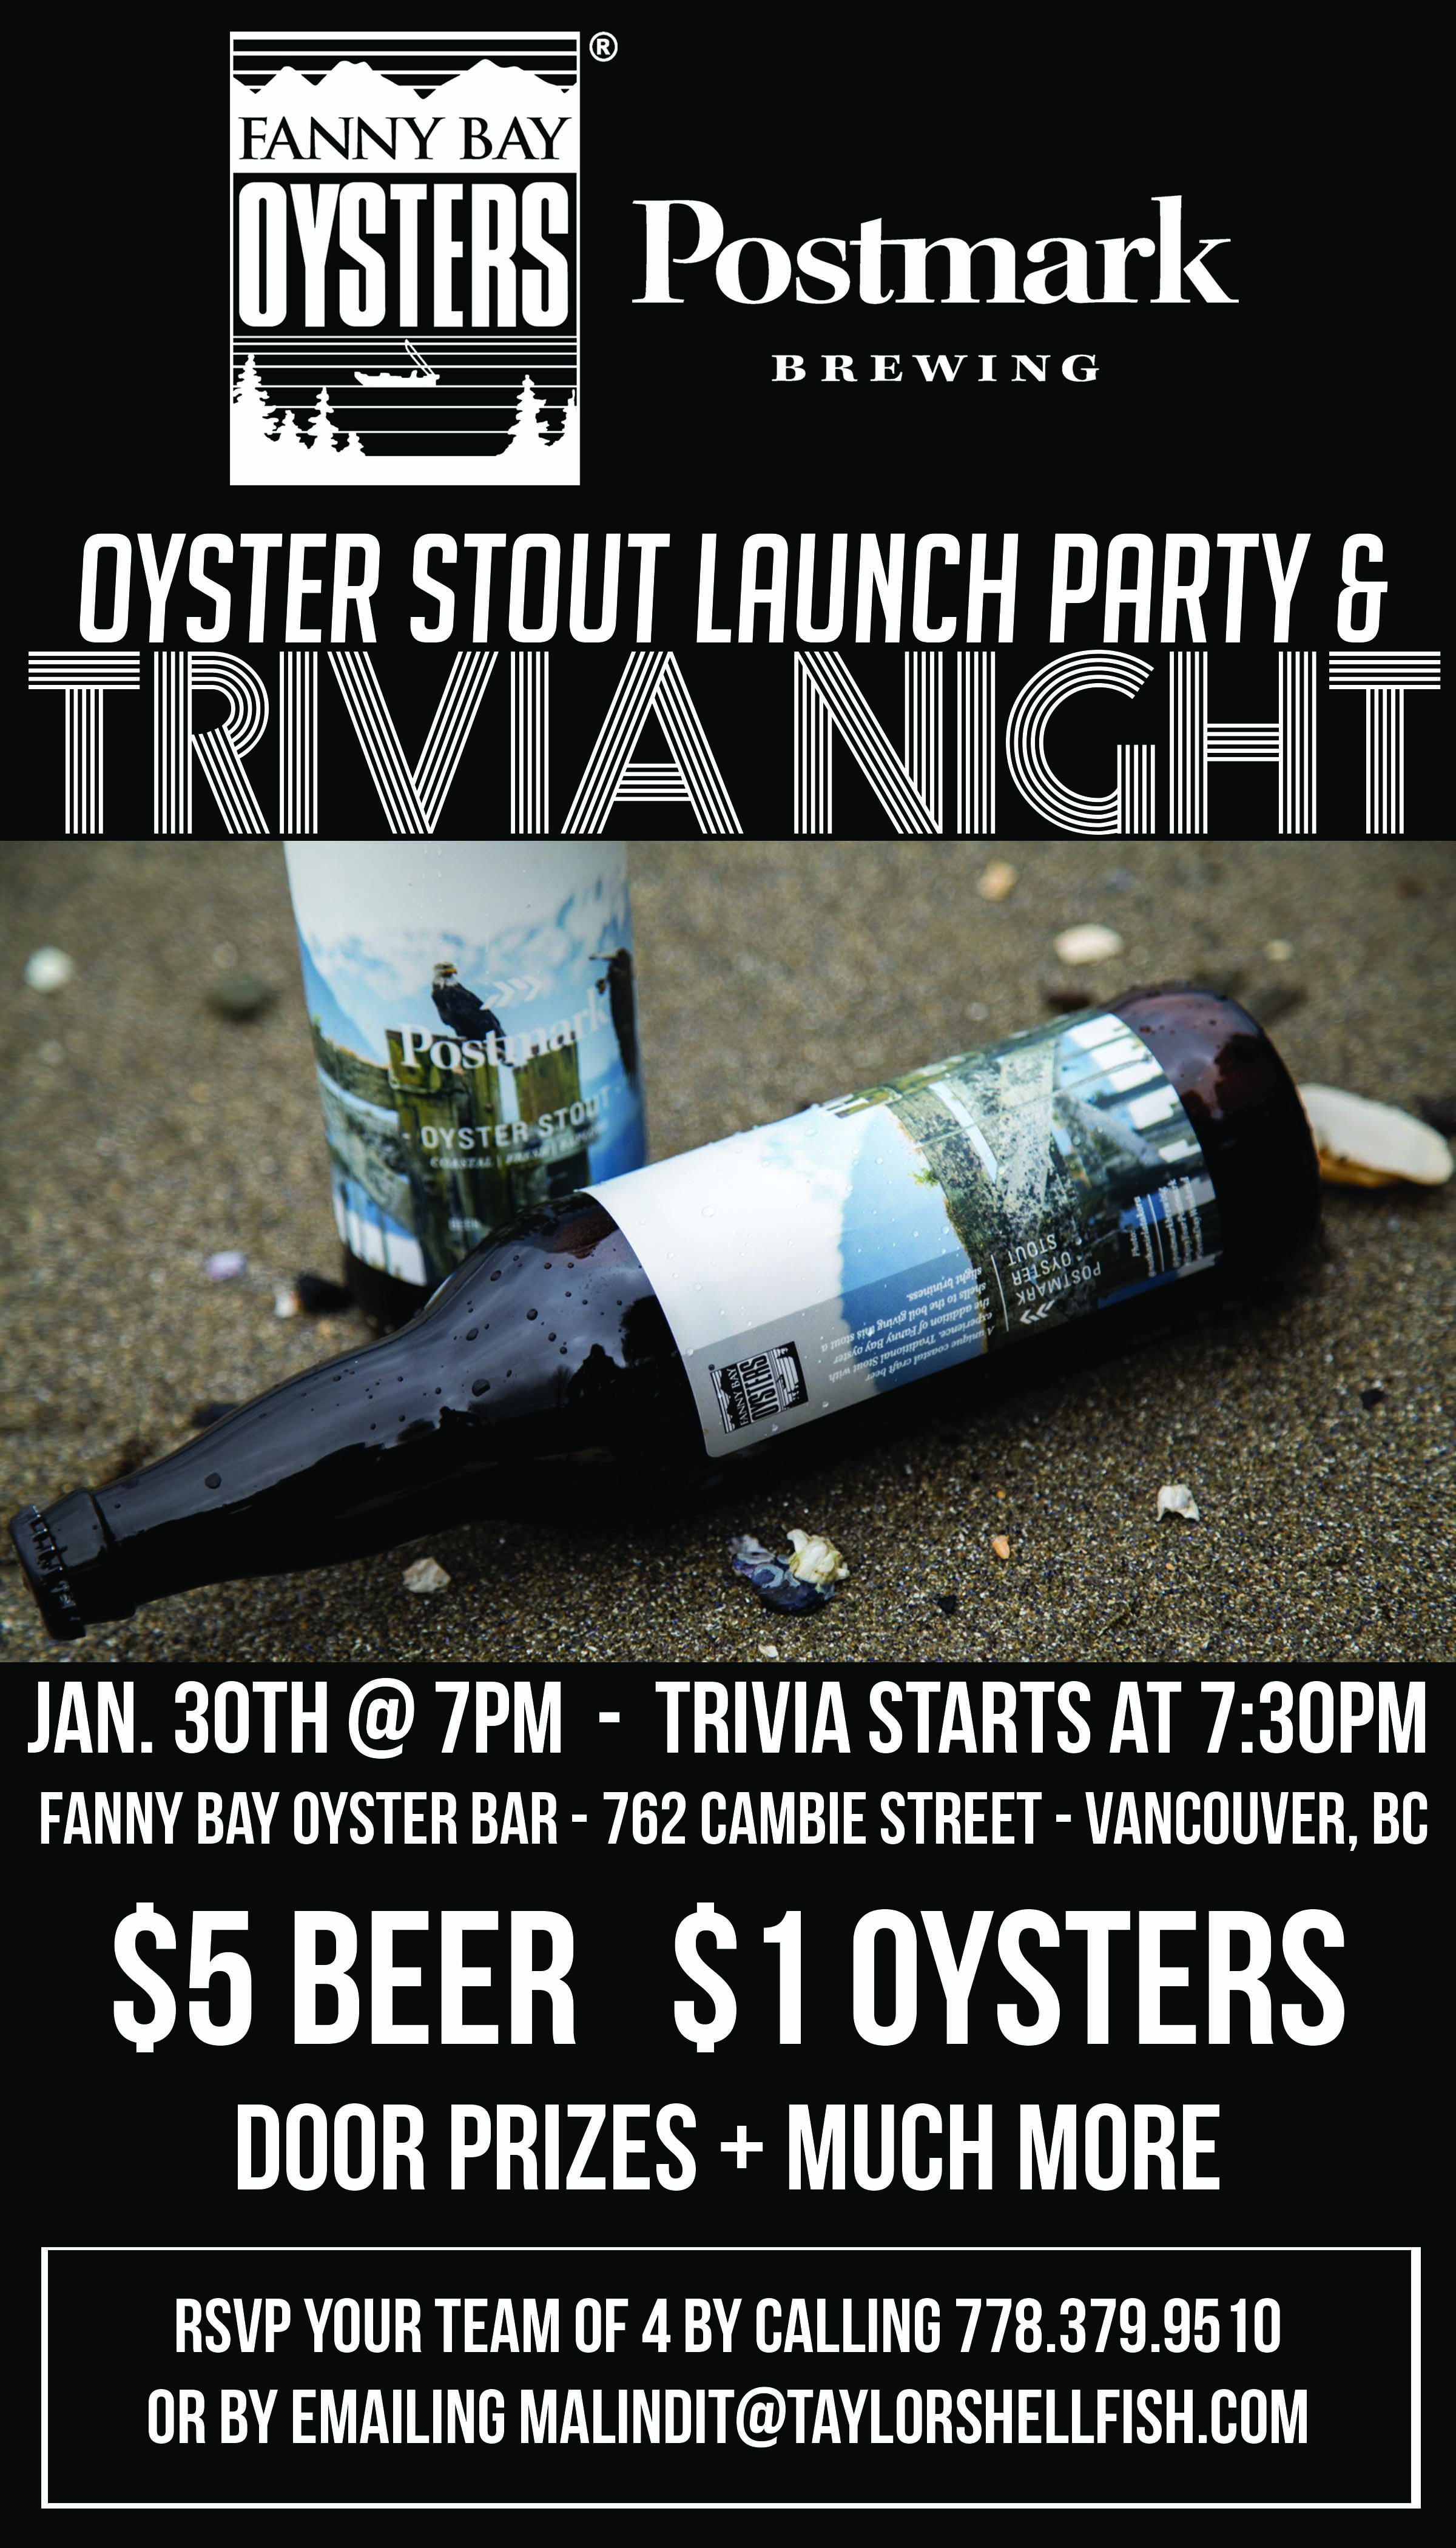 oysterstoutlaunchparty.jpg